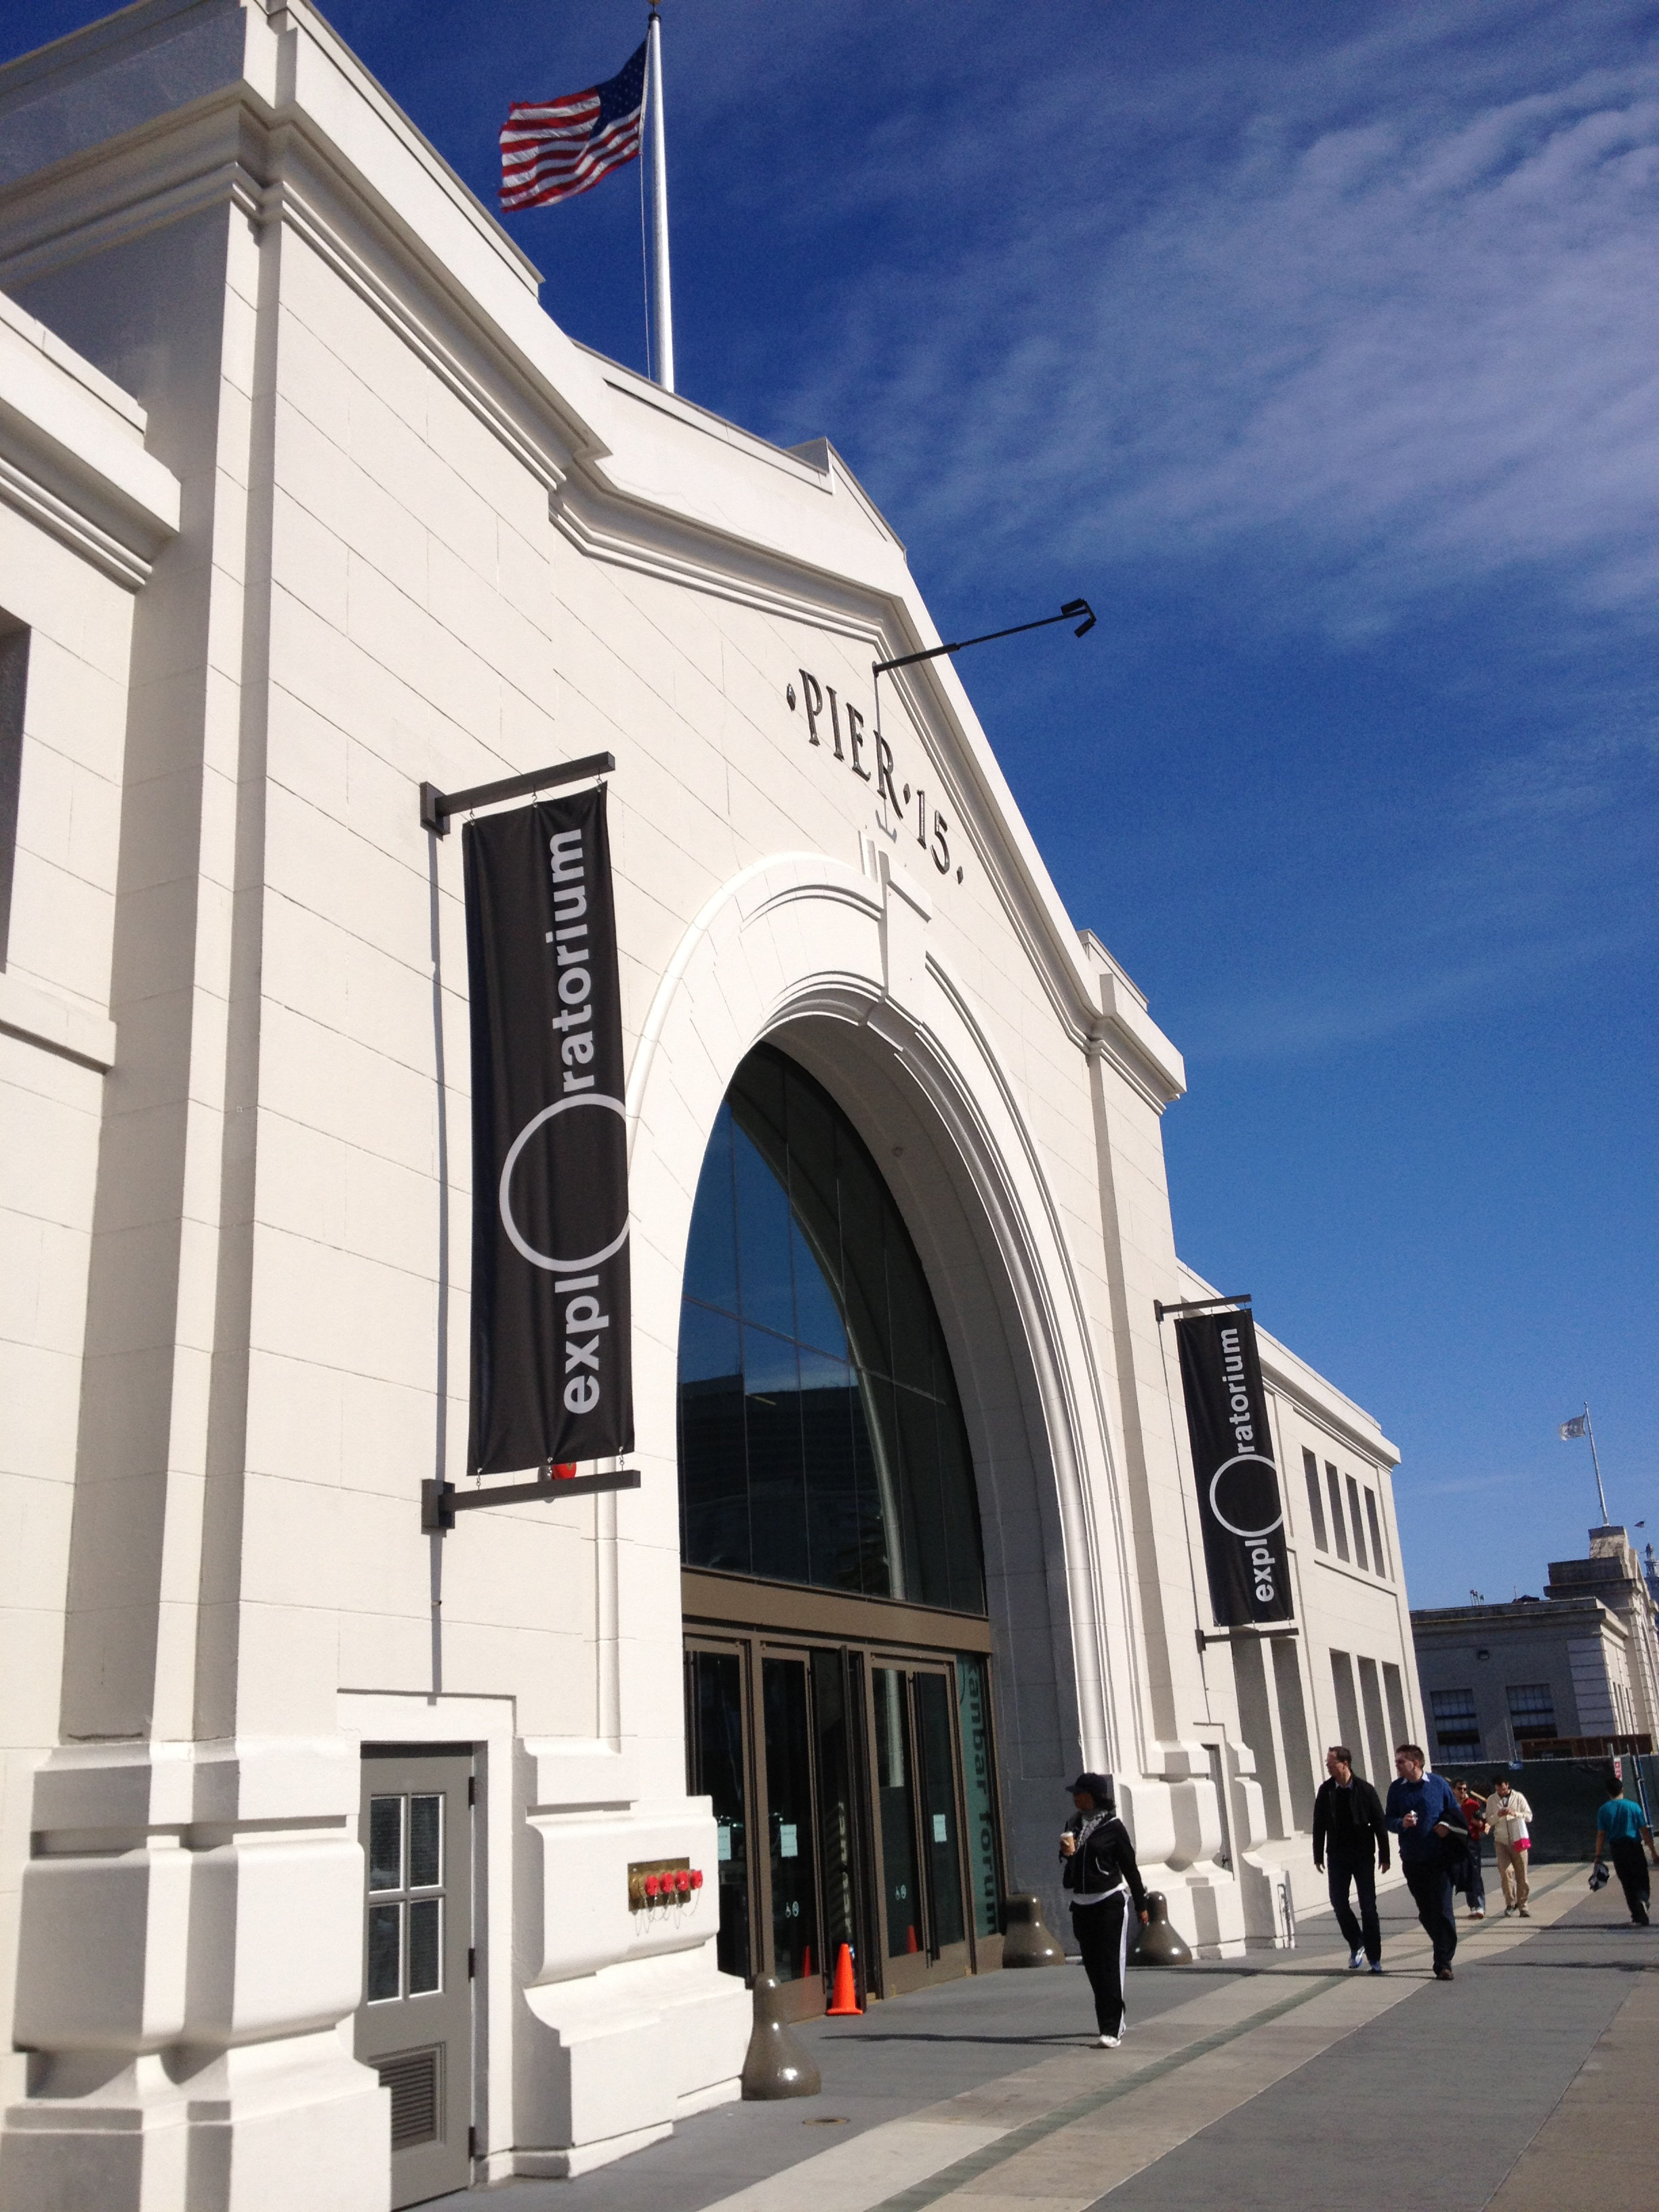 Passers-by look into the Exploratorium's new space at Pier 15 on the Embarcadero. Located on the water, the museum is set to open on April 17, proceeded by a gala the night before. The new space will feature 150 new exibits as well as outdoor exibits and a bay observatory.